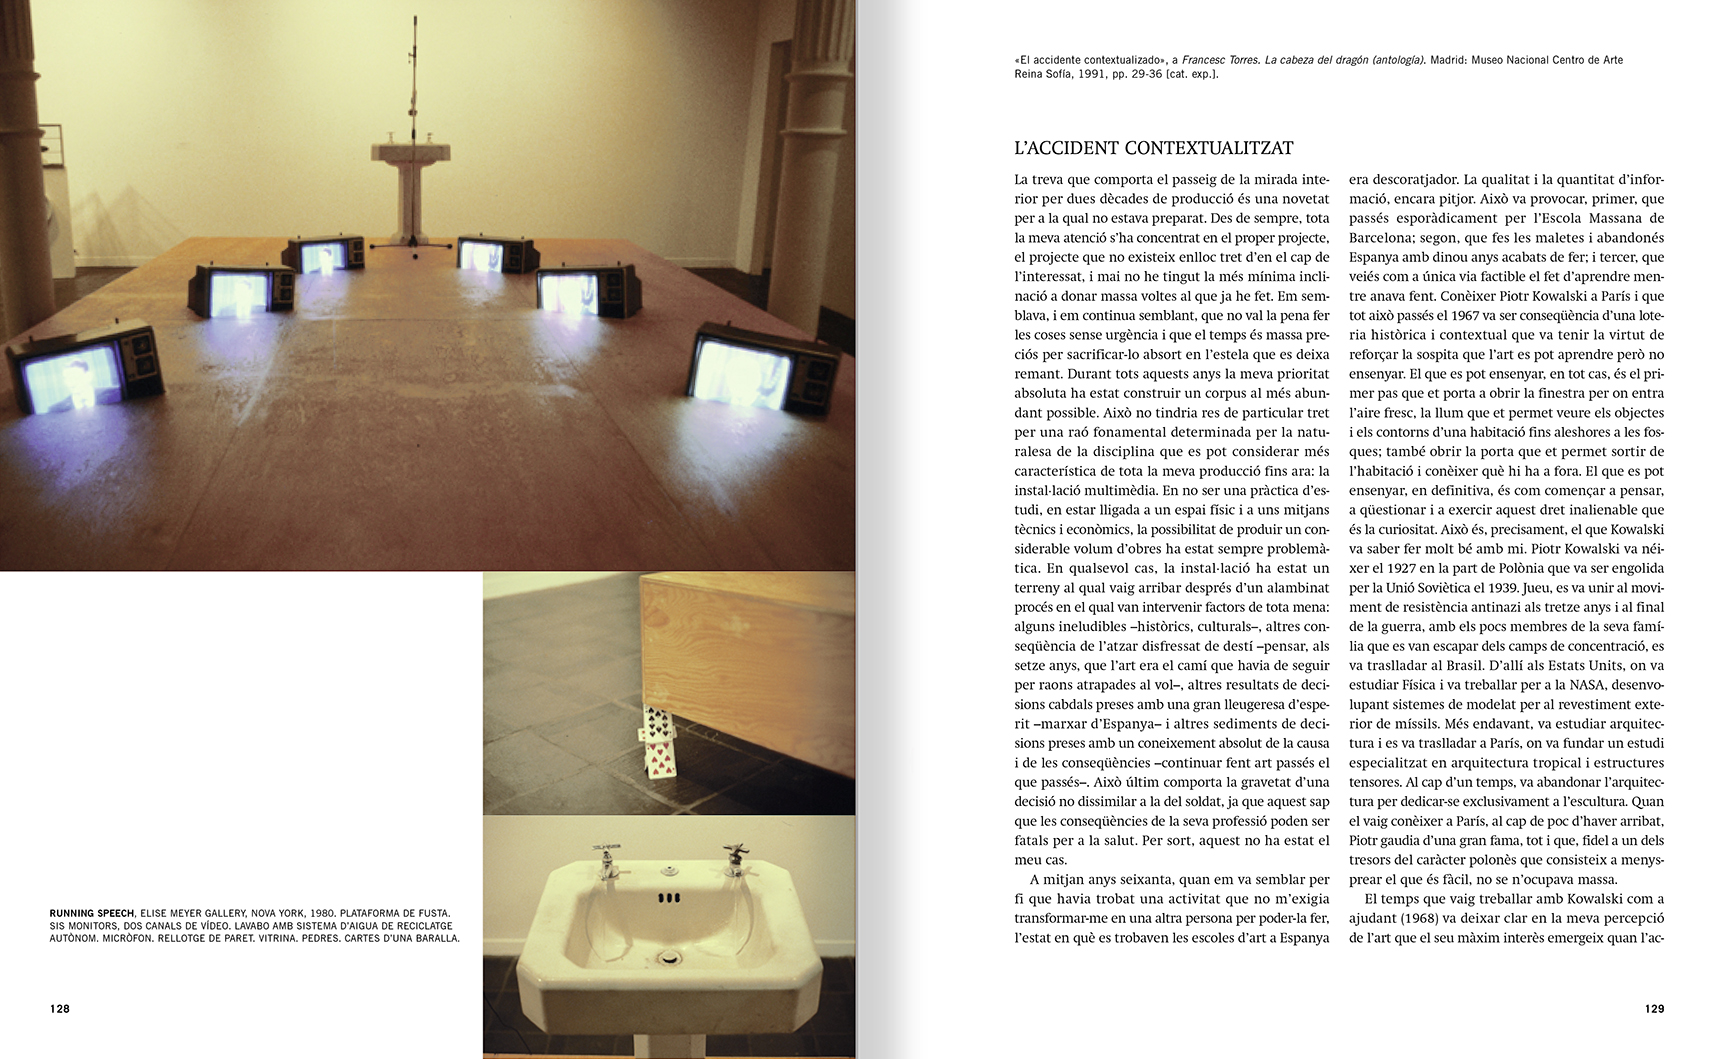 Selection from the catalogue 'Francesc Torres. Da capo', pages 128 and 129